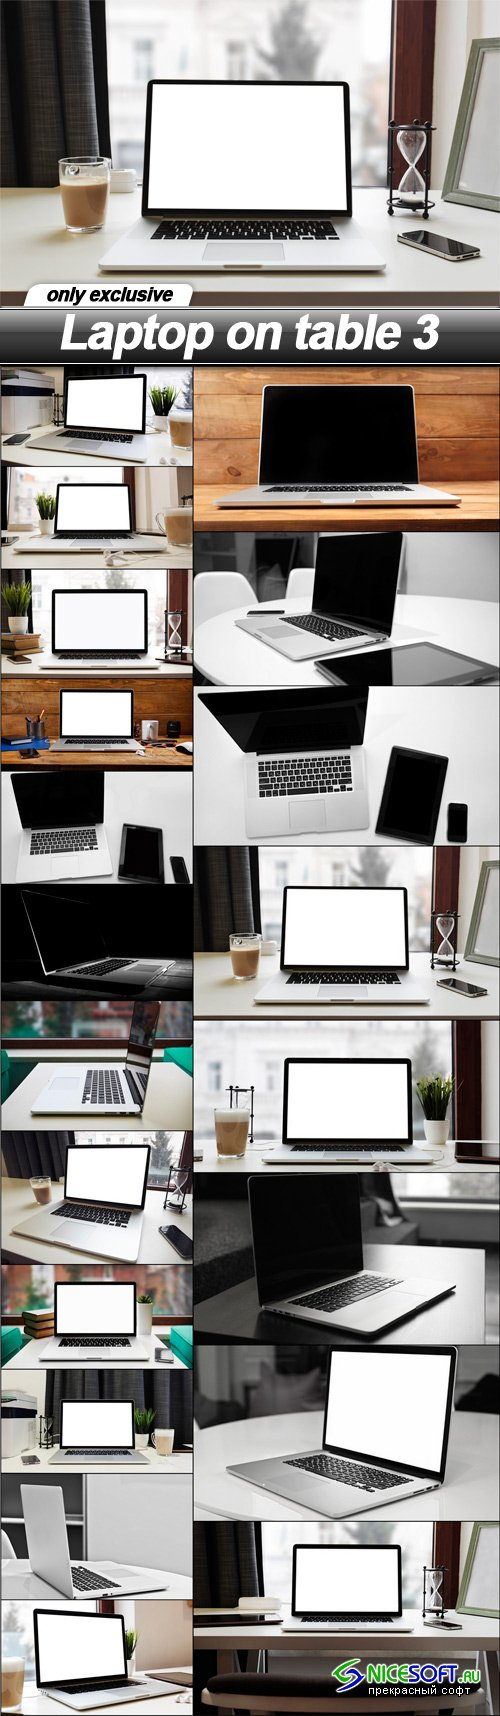 Laptop on table 3